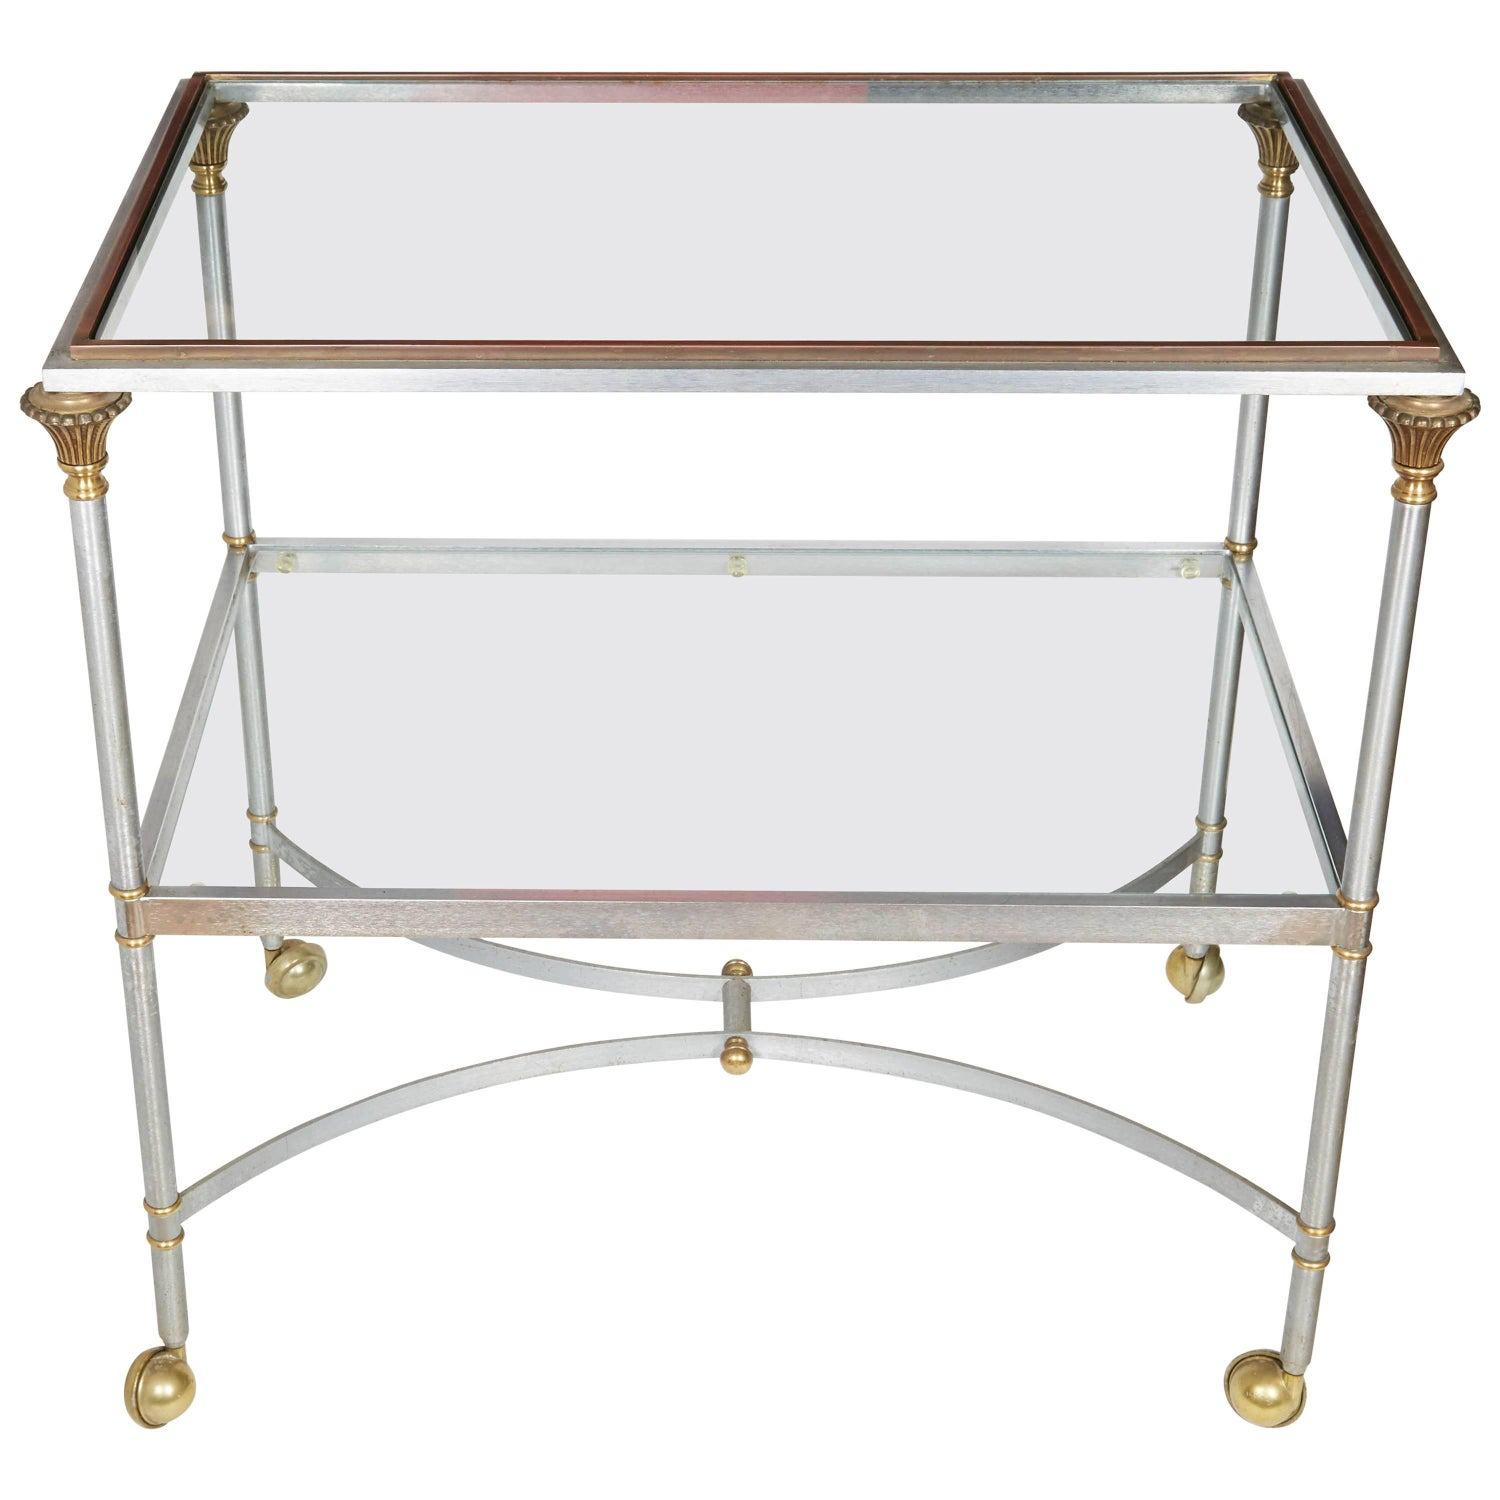 Four Tier Swivel Coffee Table at 1stdibs